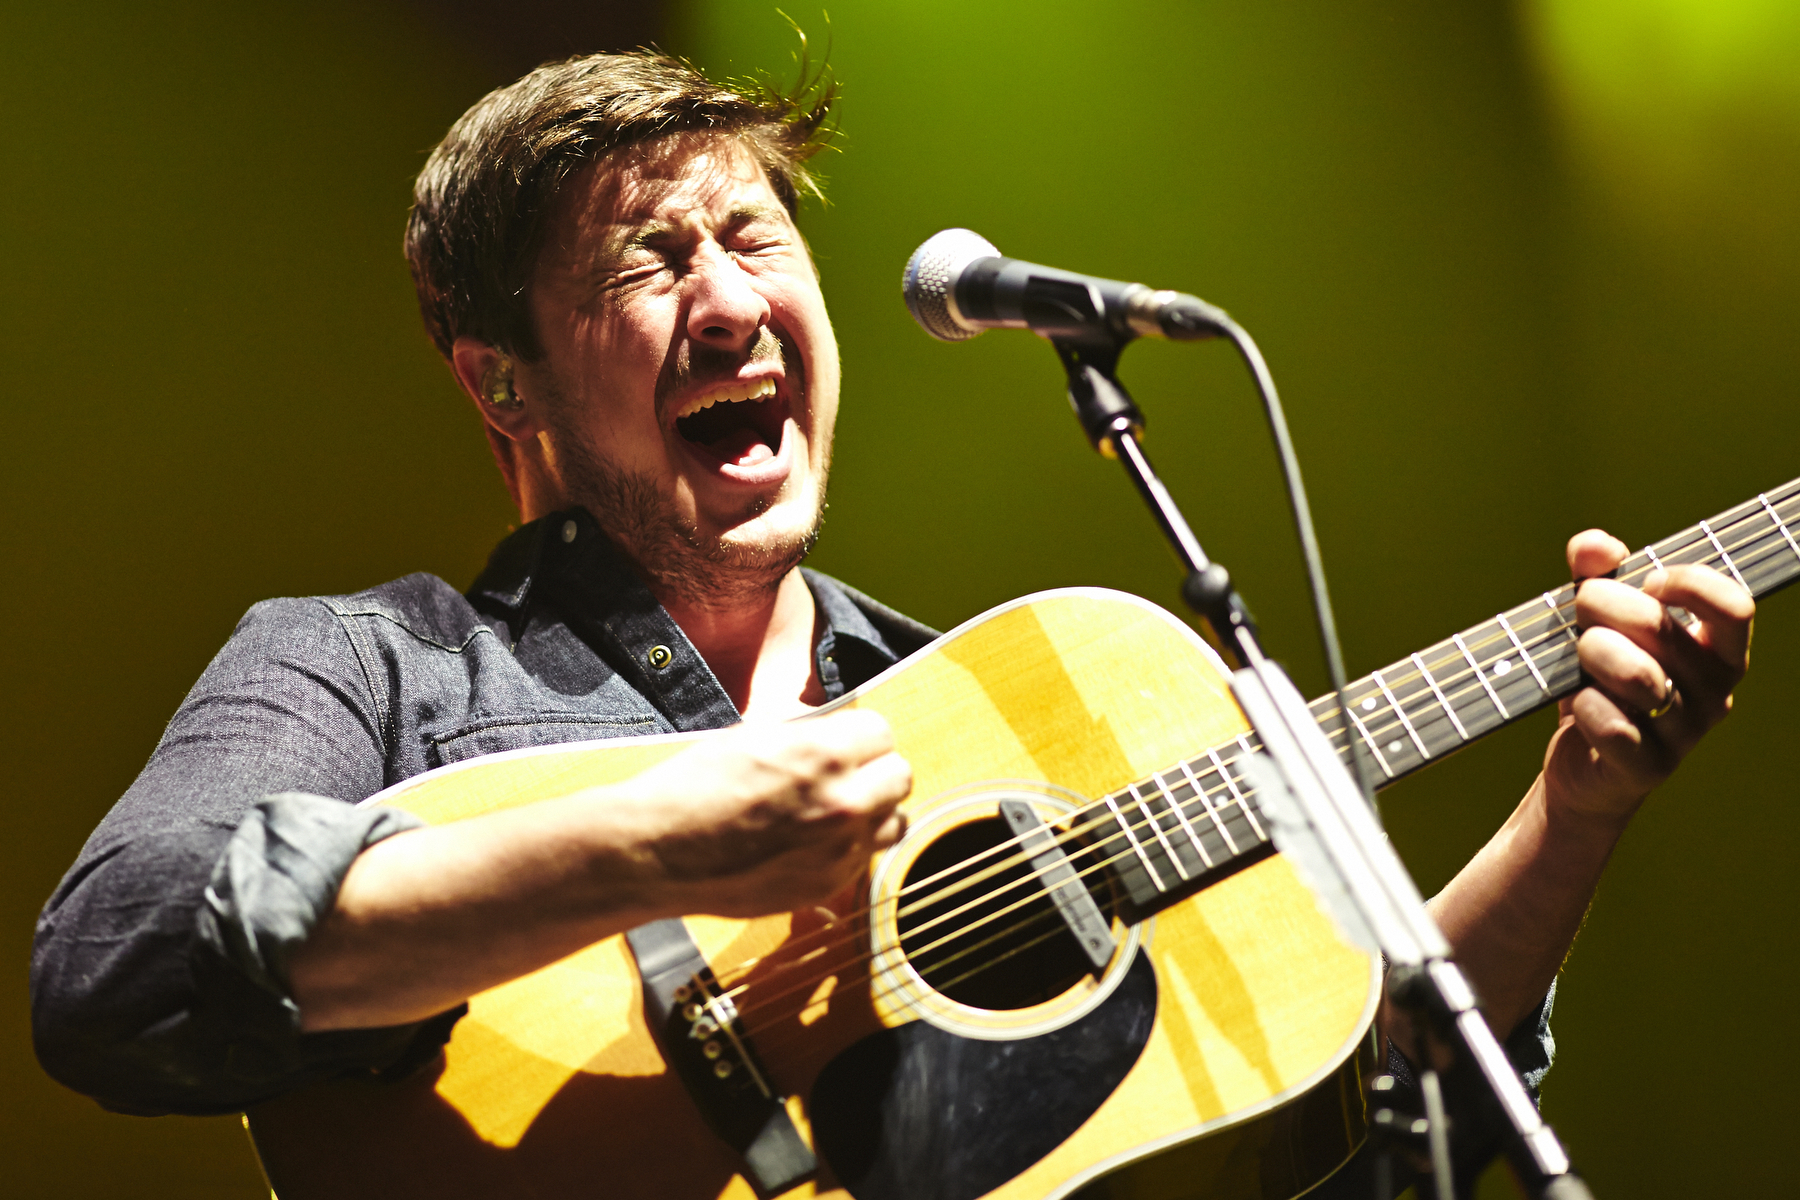 Mumford_And_Sons_At_Xcel_Energy_Center_By_Joe_Lemke_Medium_Res_007.JPG